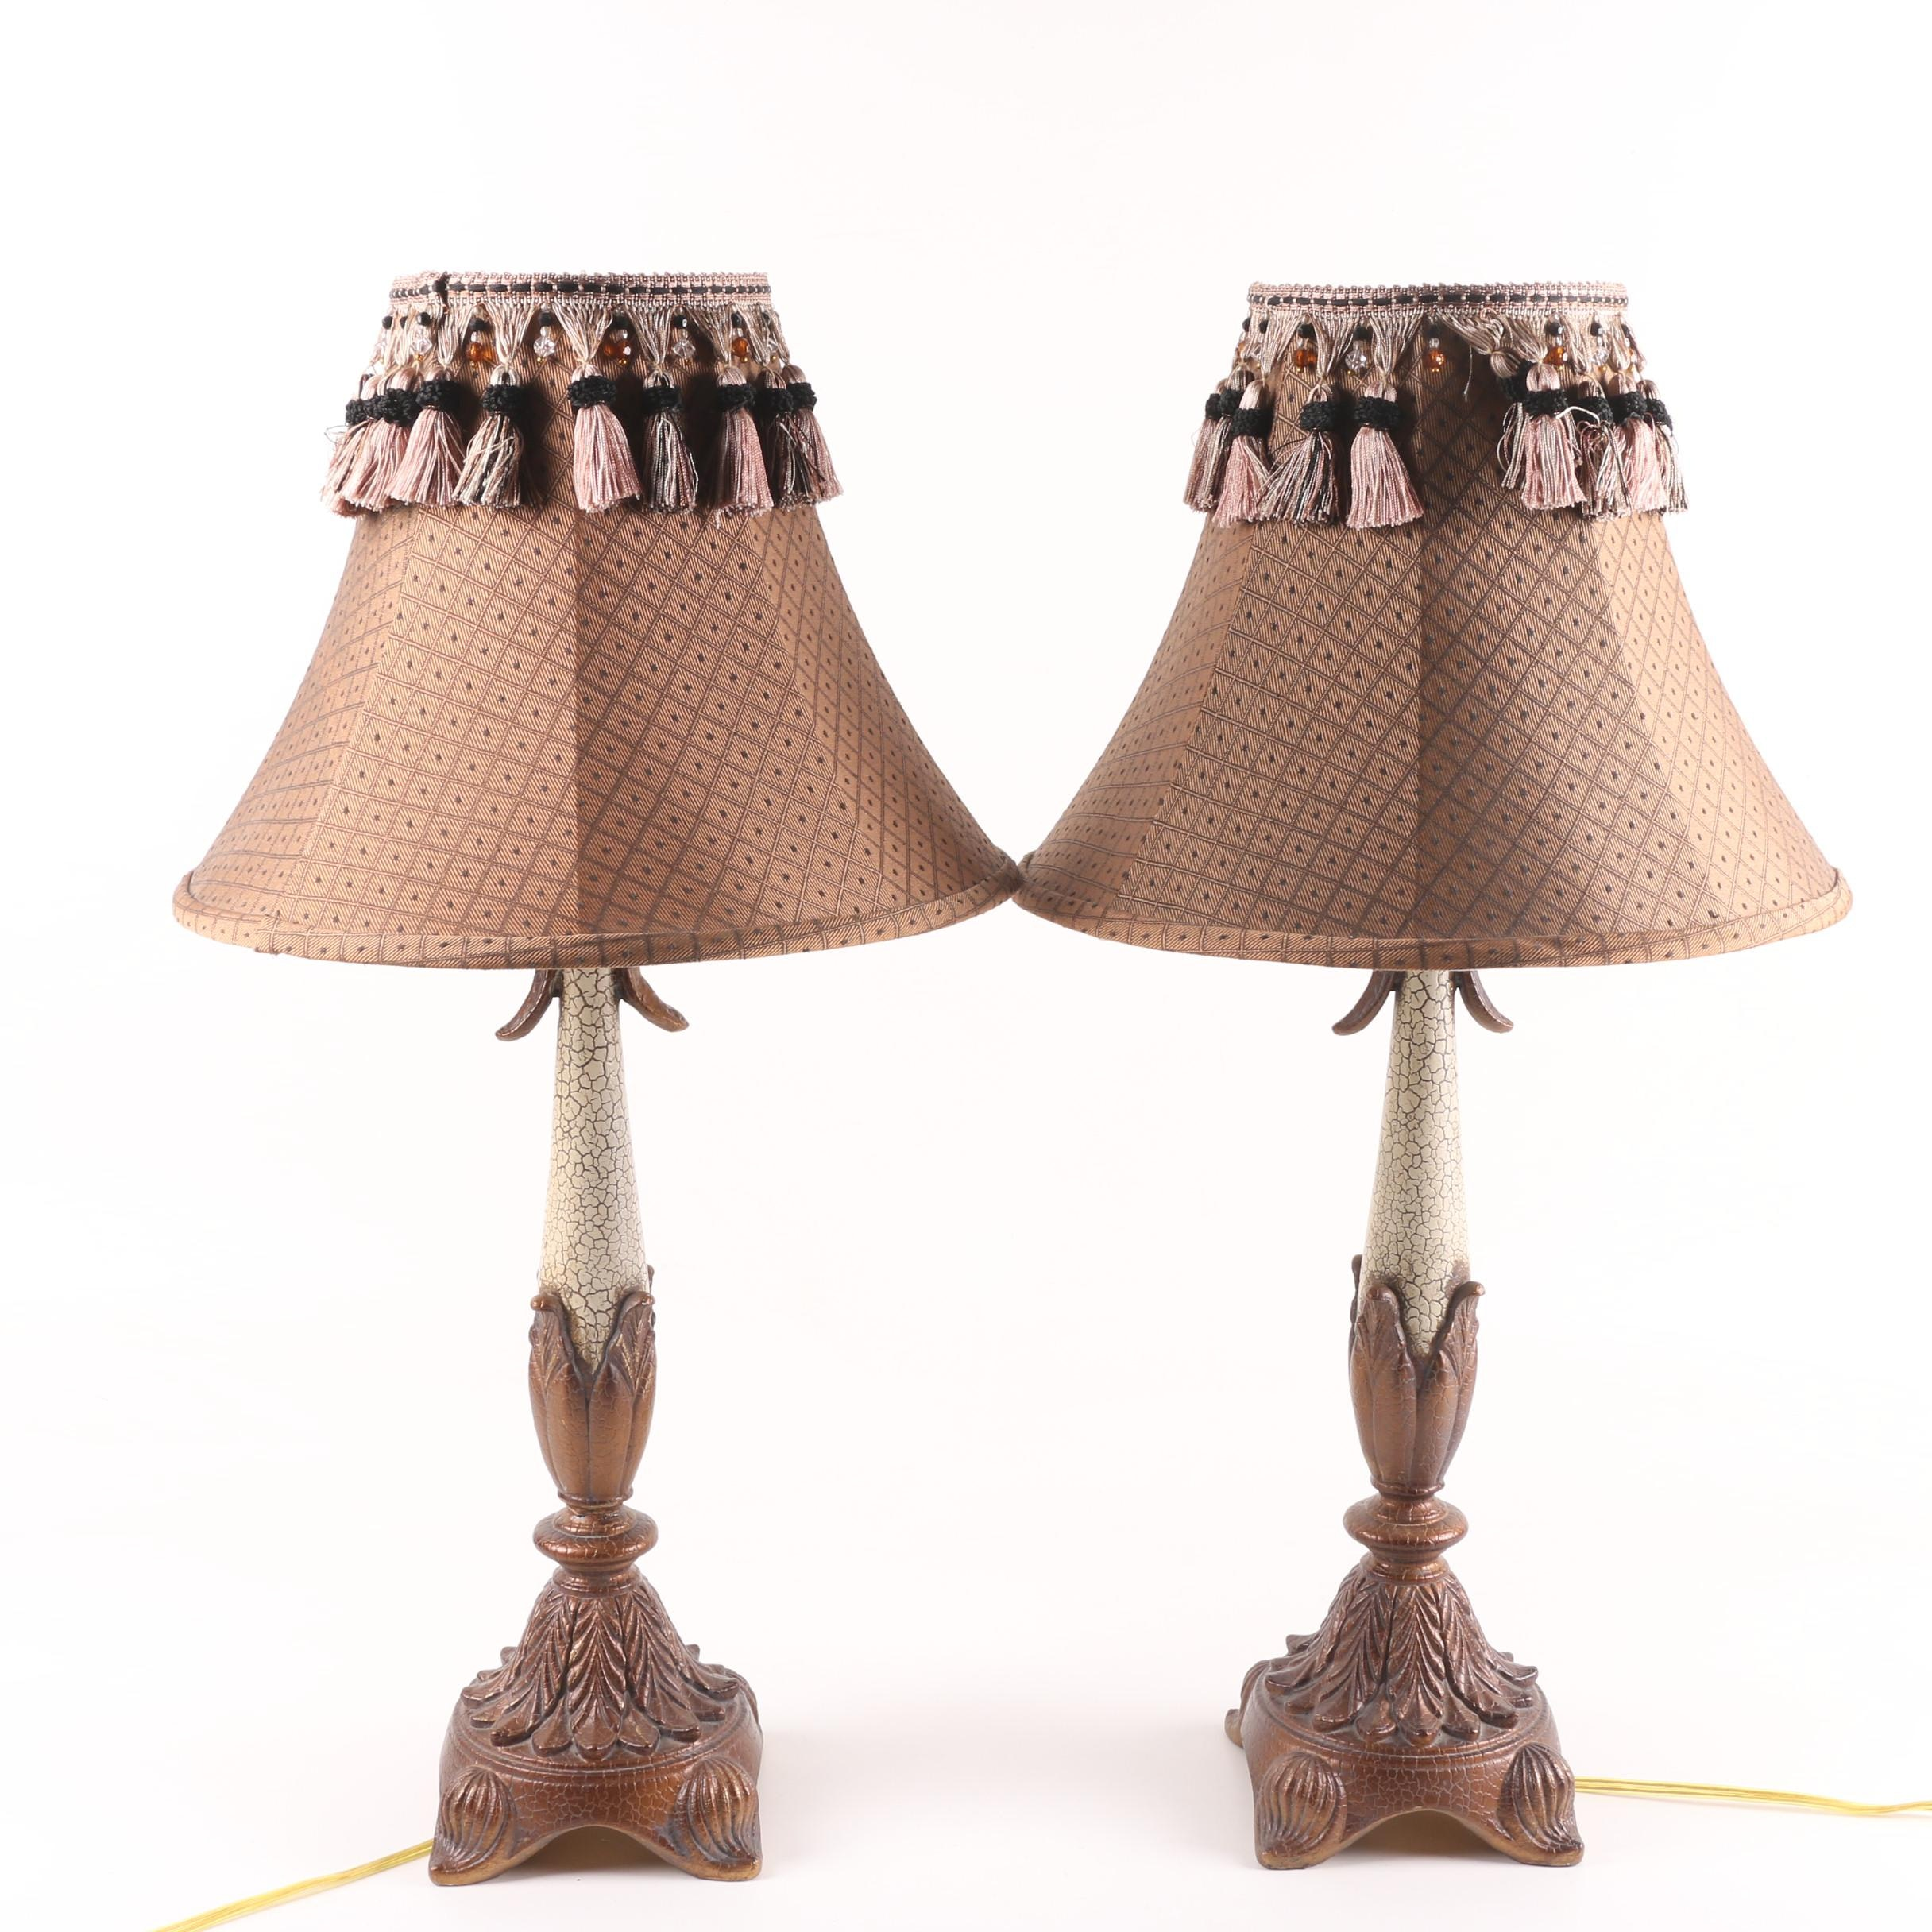 Berman Craquelure Finish Torch Style Table Lamps with Tassel Accented Shades